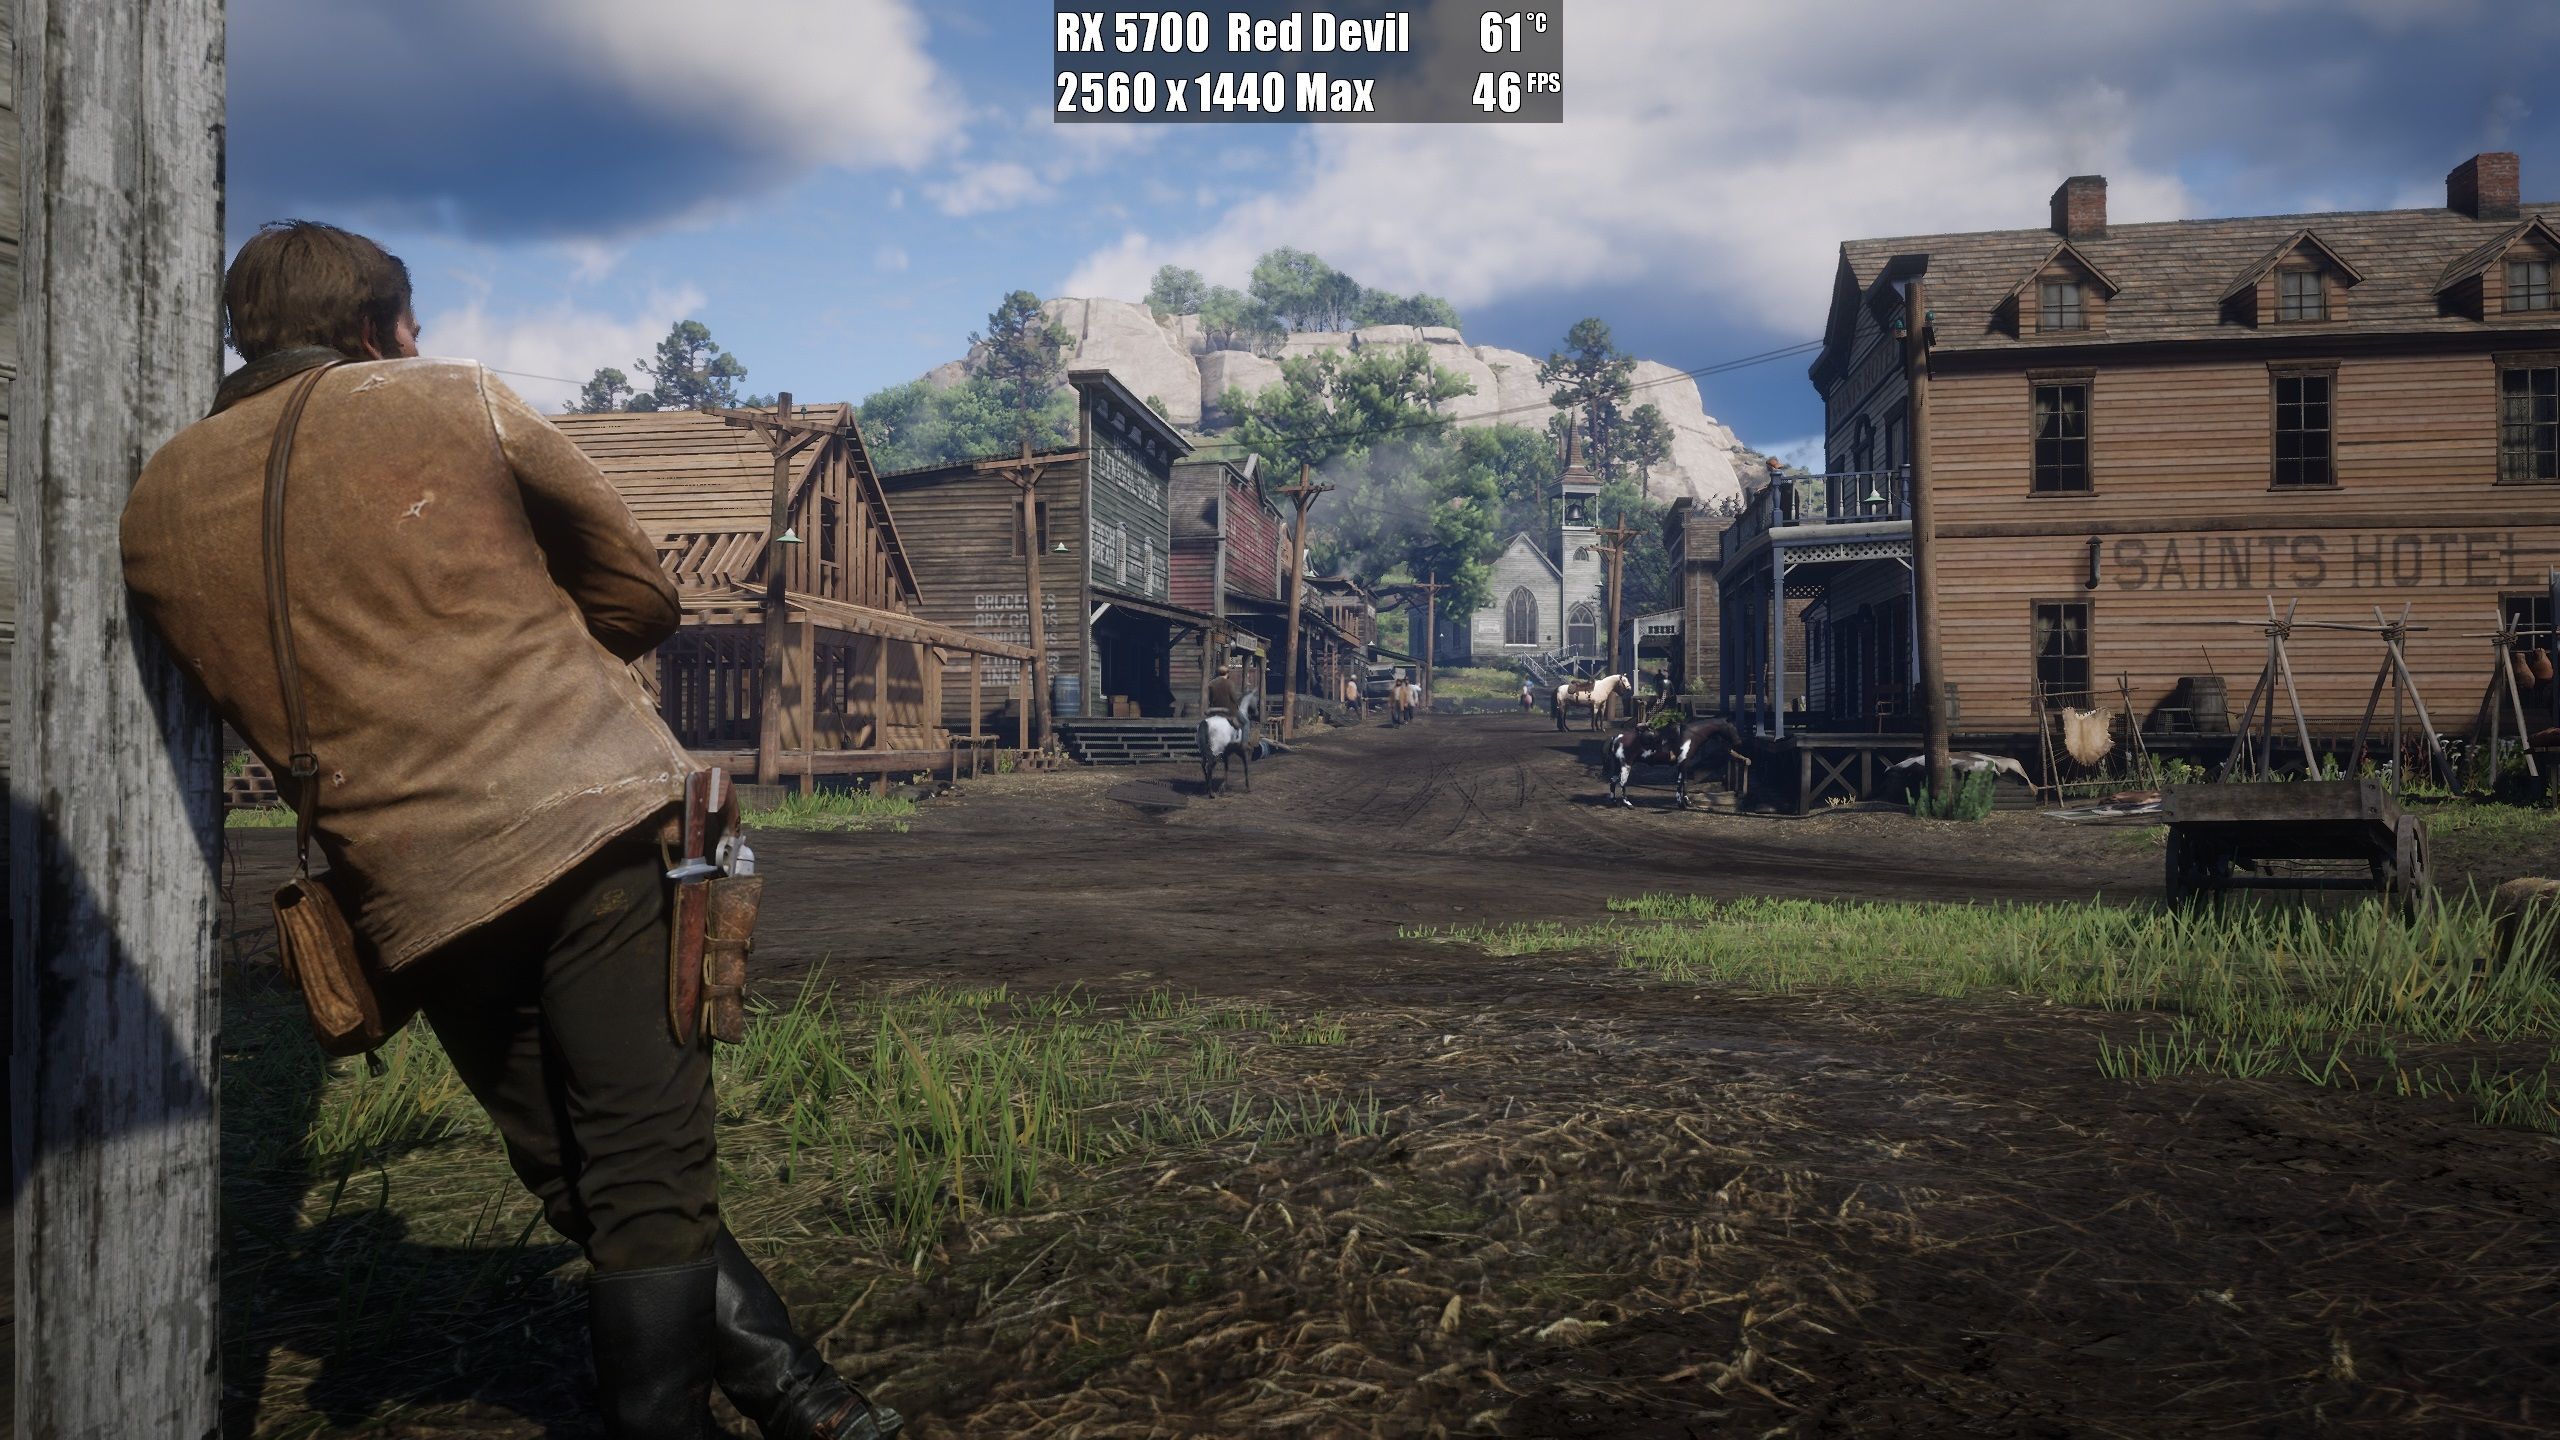 Red Dead Redemption 2 PC Performance Review and Optimisation Guide